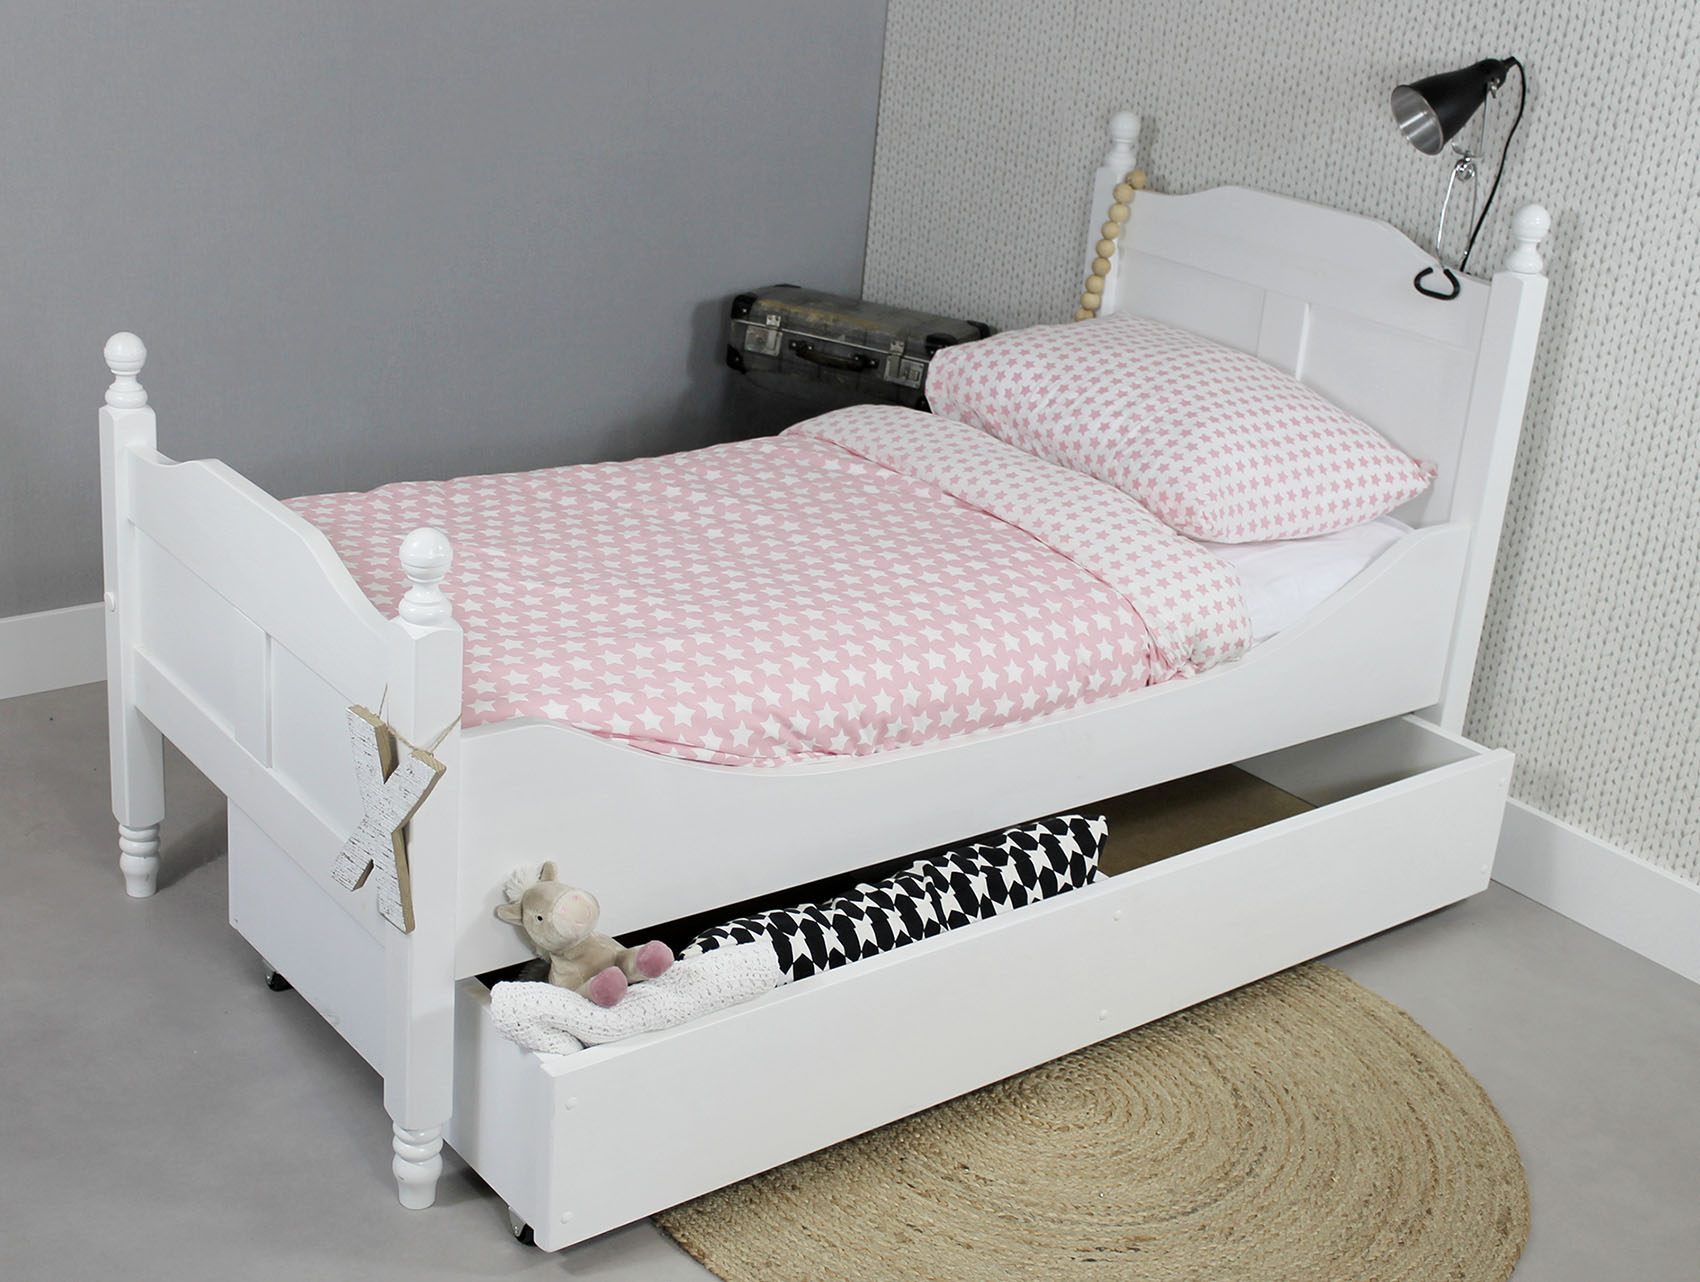 http://myshop.s3-external-3.amazonaws.com/shop2329900.pictures.Peuterbed%20Amalia%20Opberglade.jpg